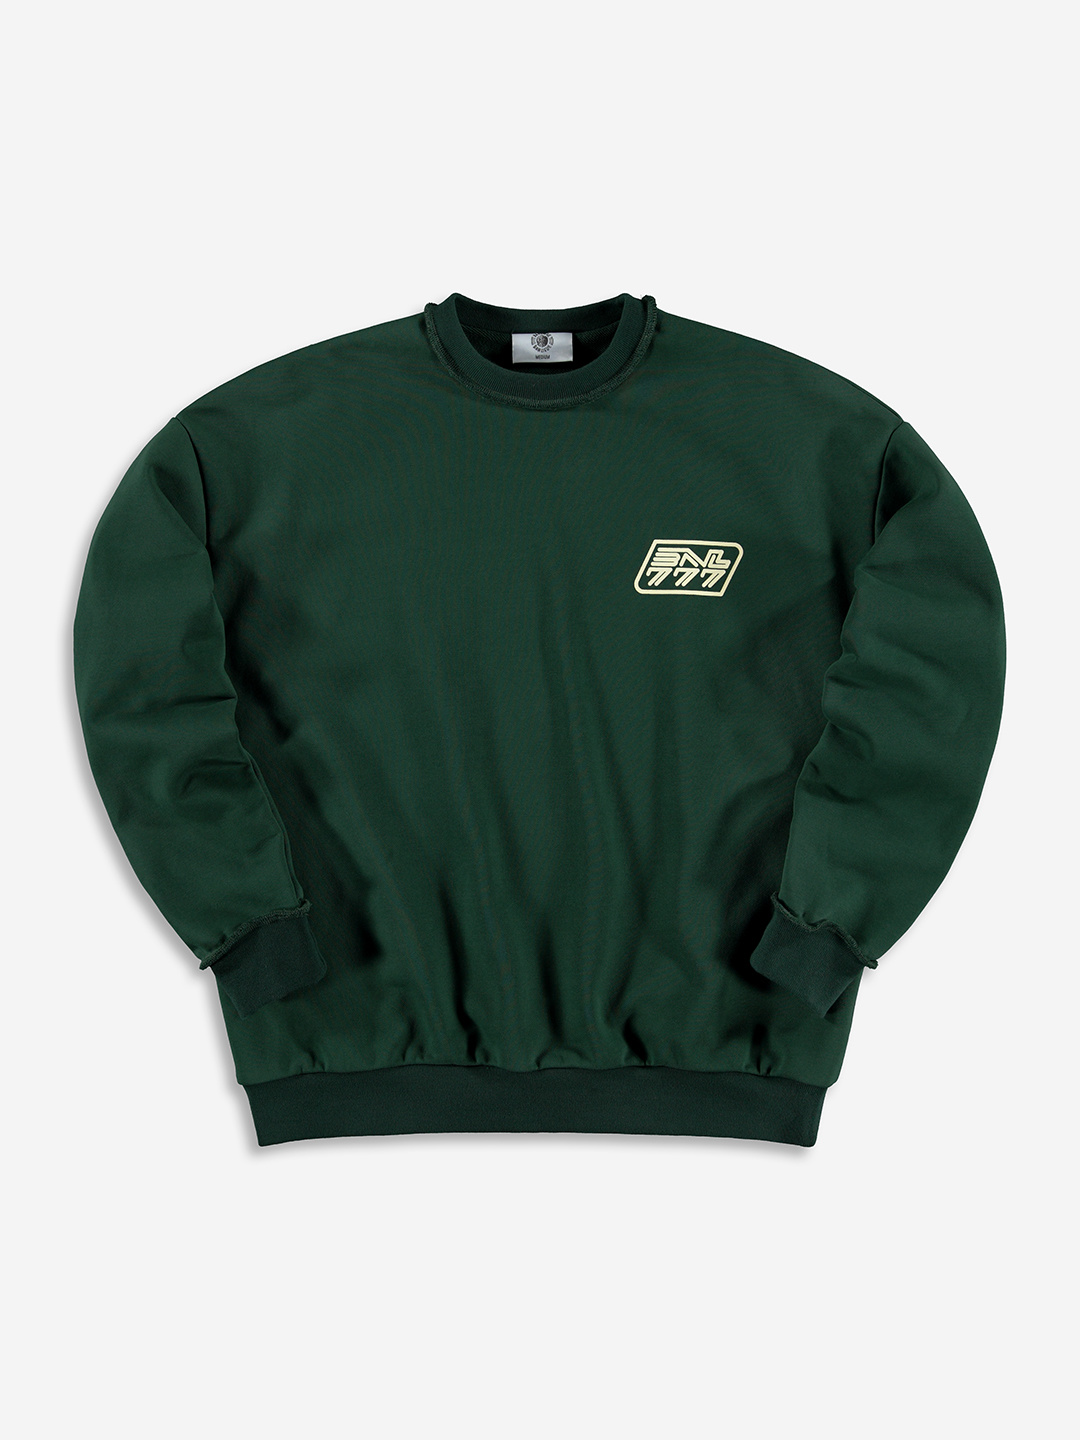 BNL777 SWEATER FOREST